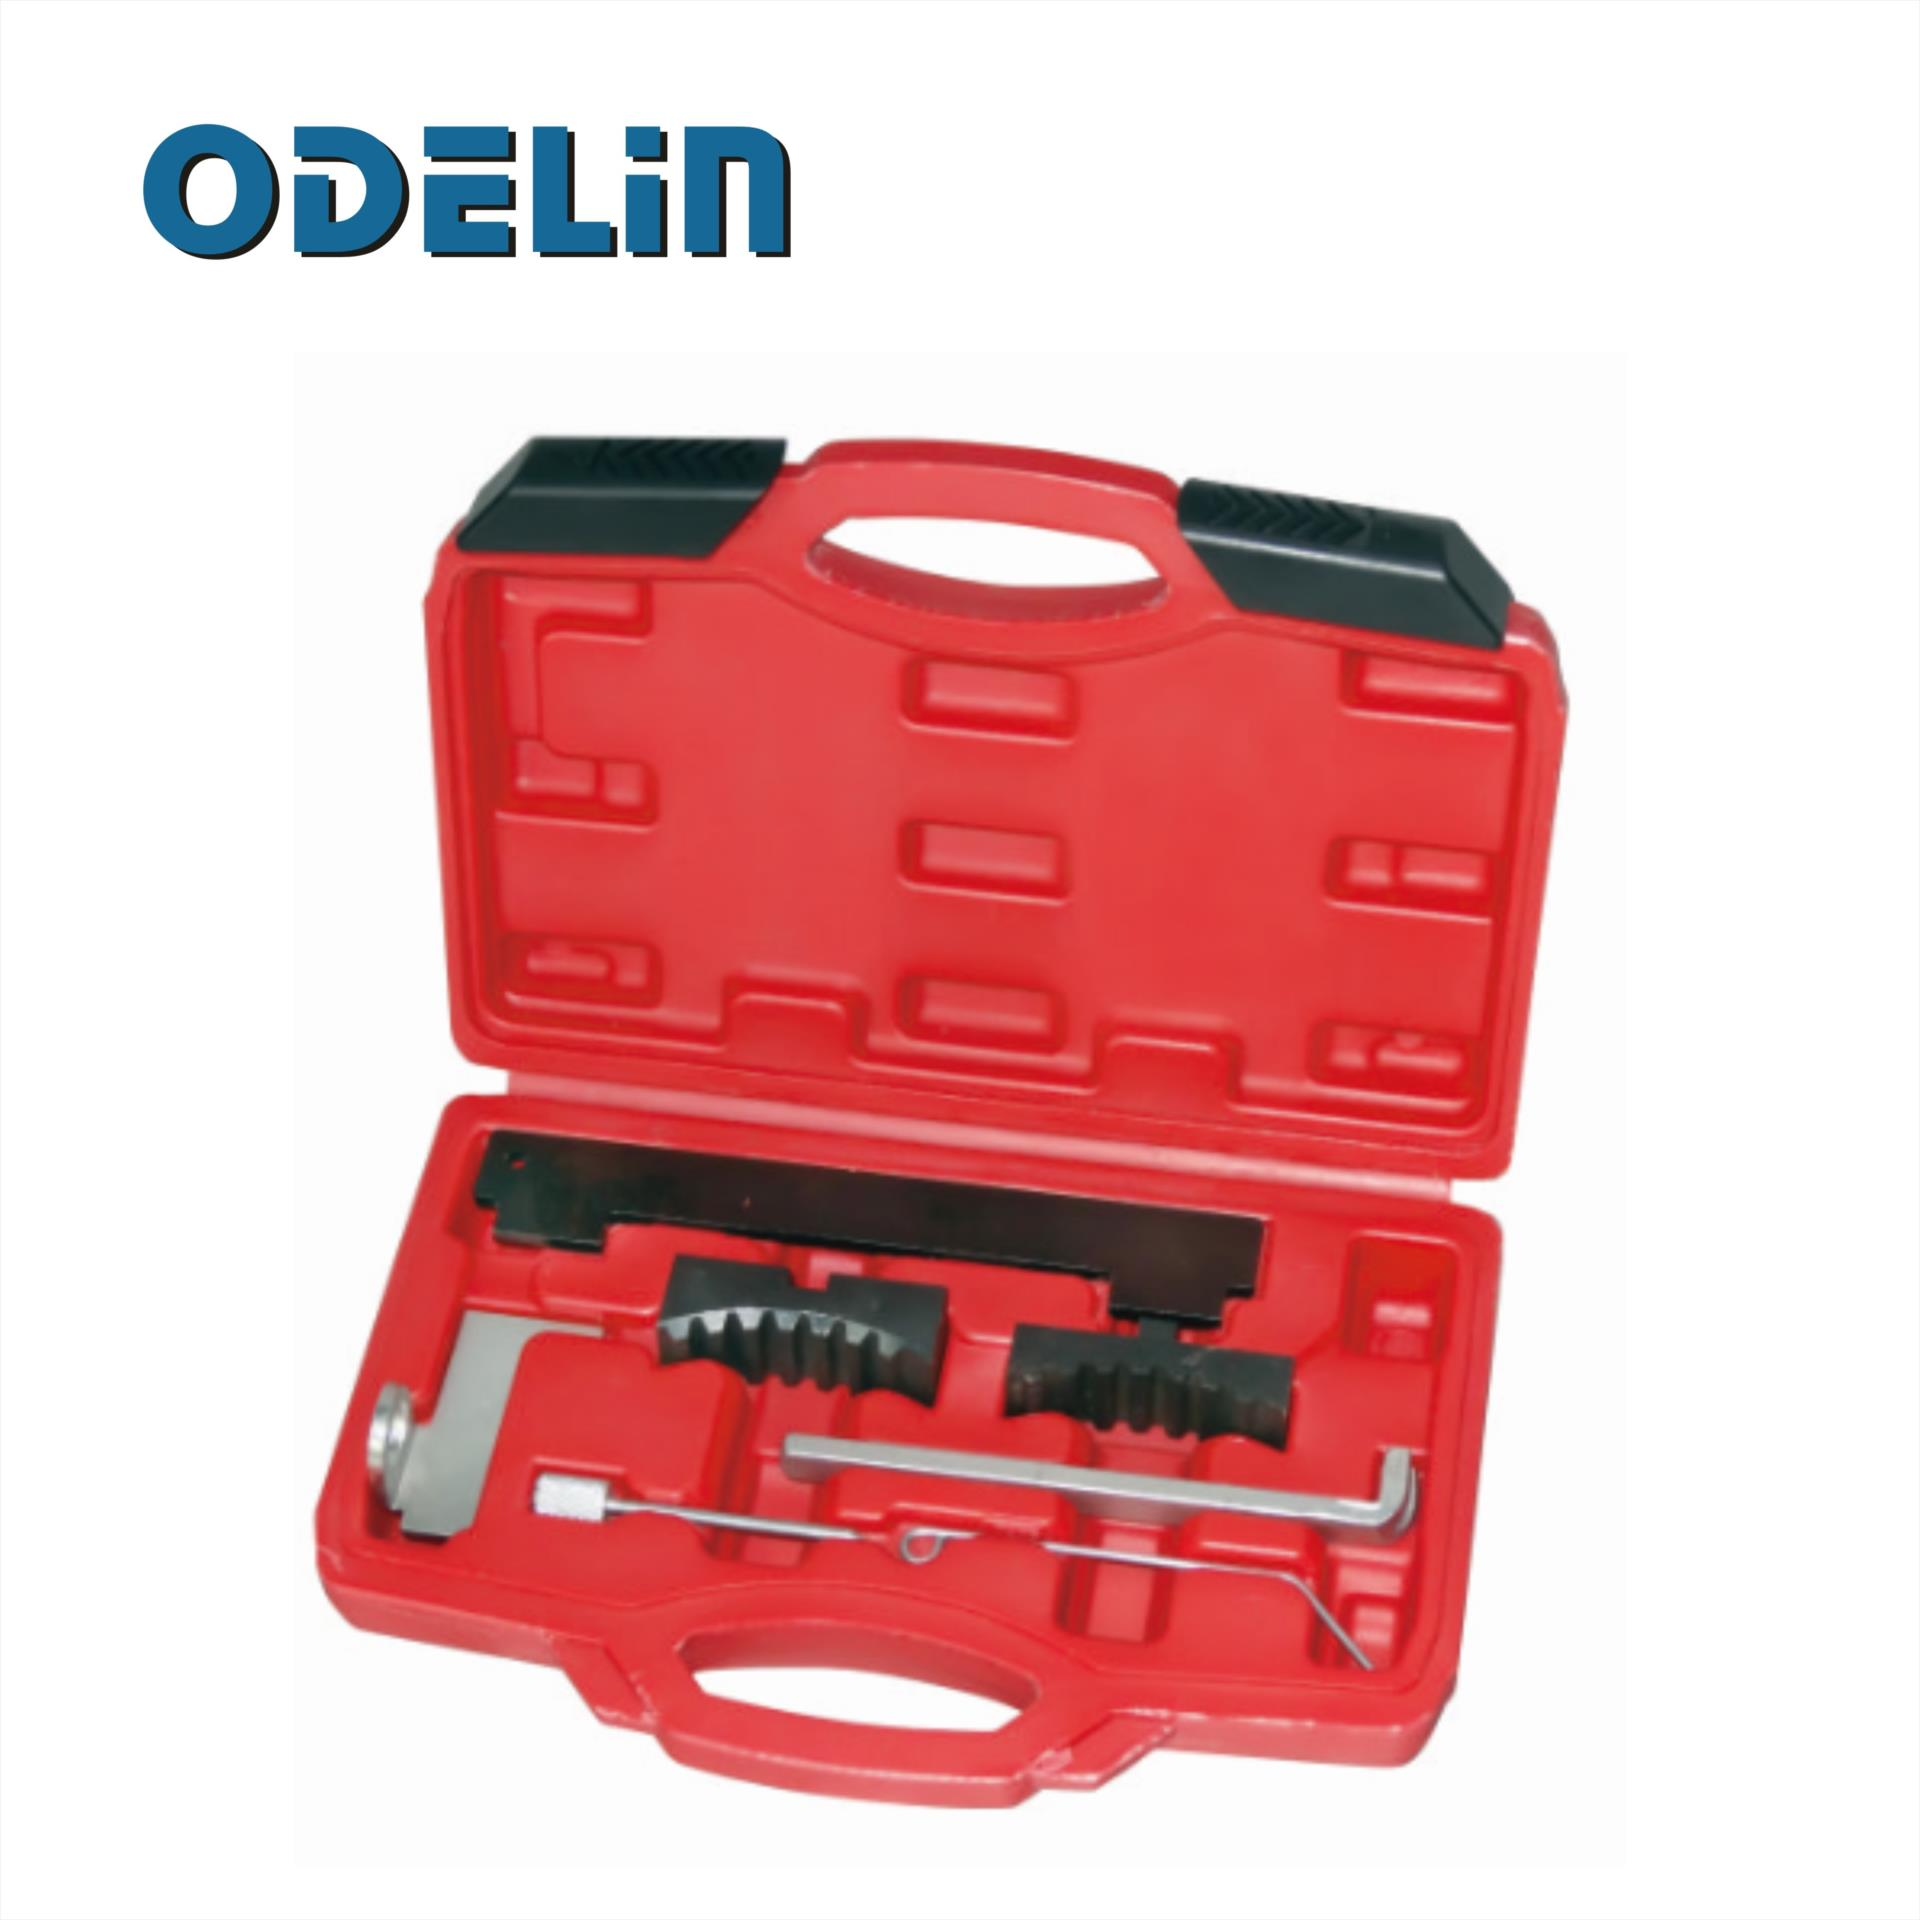 Engine Timing Tool Kit Vauxhall Fiat Opel Alfa 1.6 1.8 16V 2003-11 Astra Corsa Vectra - ODELIN TOOLS store